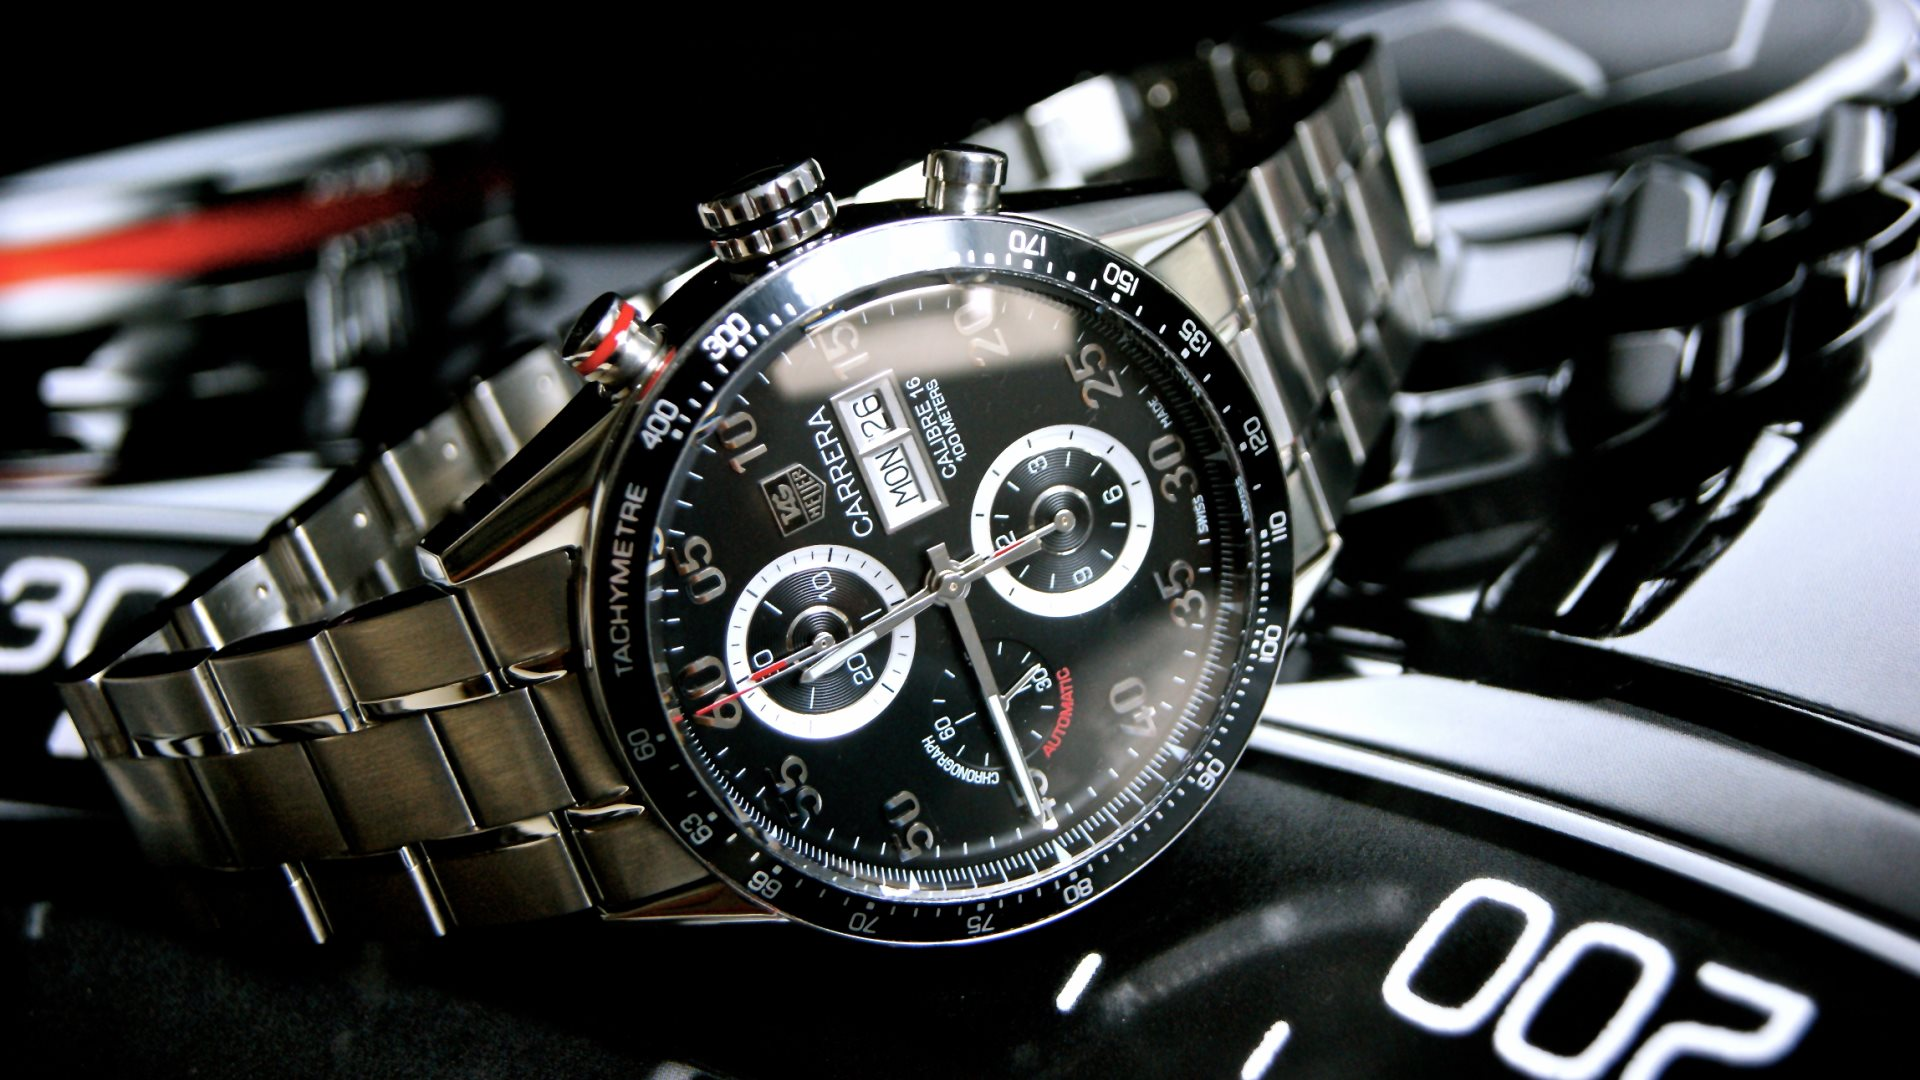 tudor rolex breitling tag heur watches wallpapers in